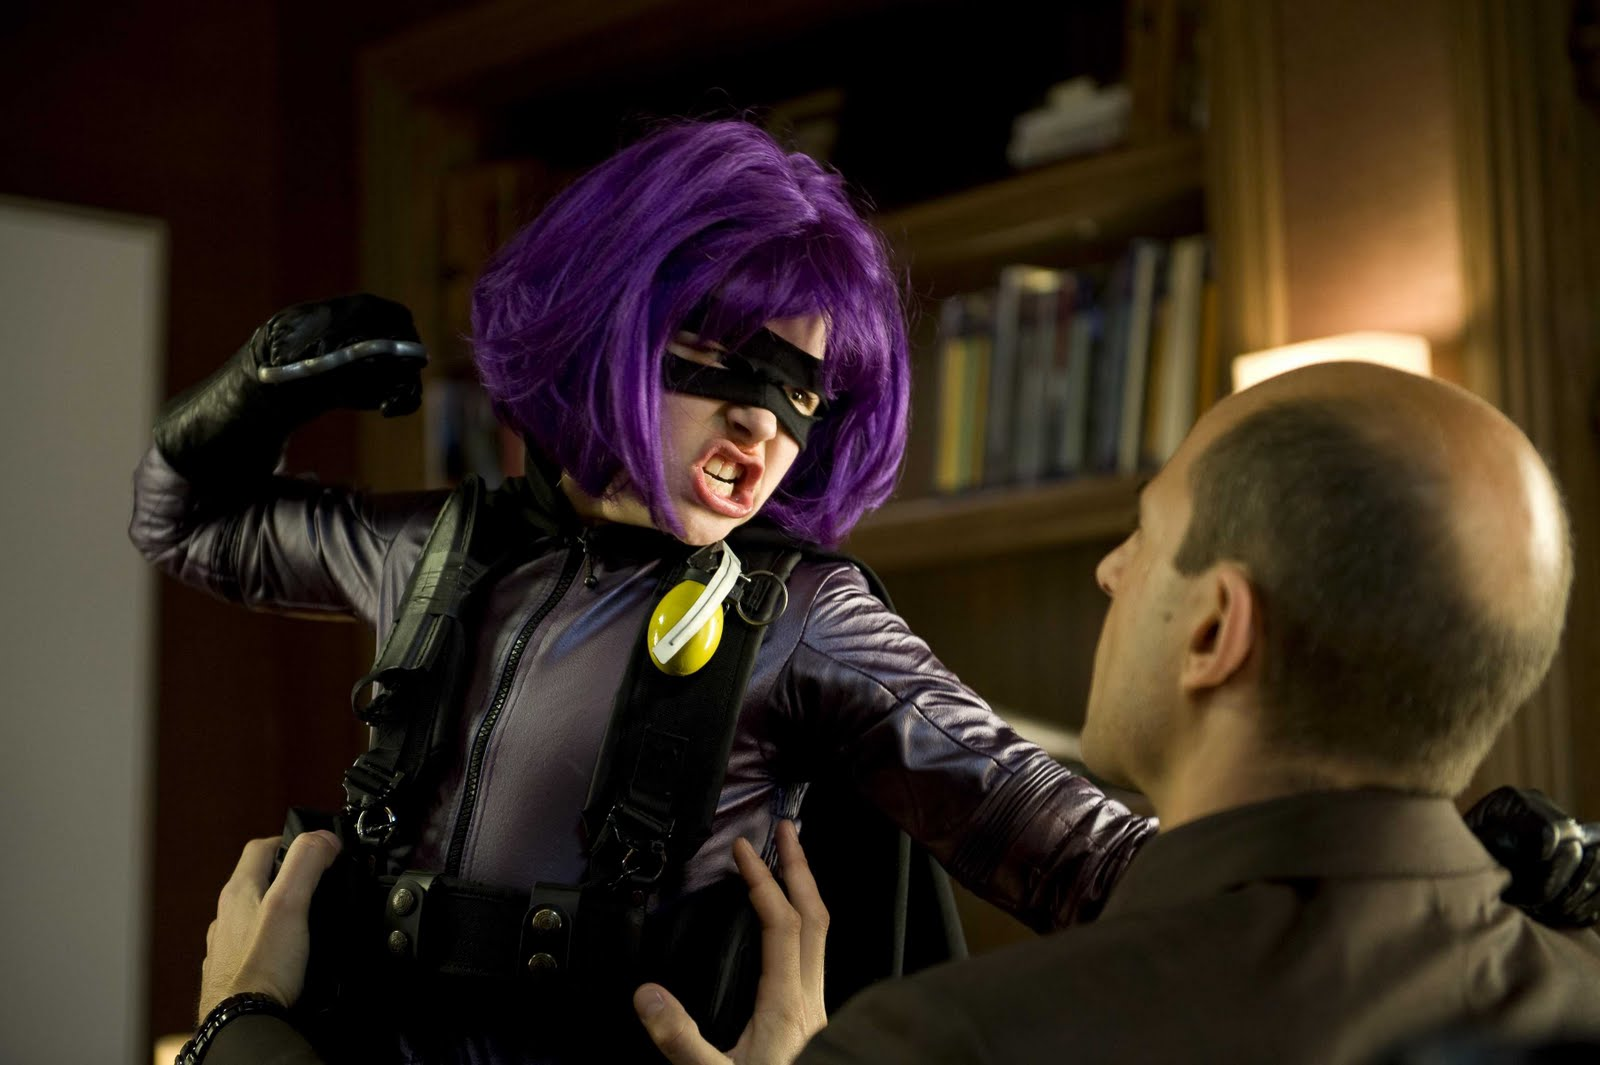 kick-ass-chloe-grace-moretz-as-hit-girl.